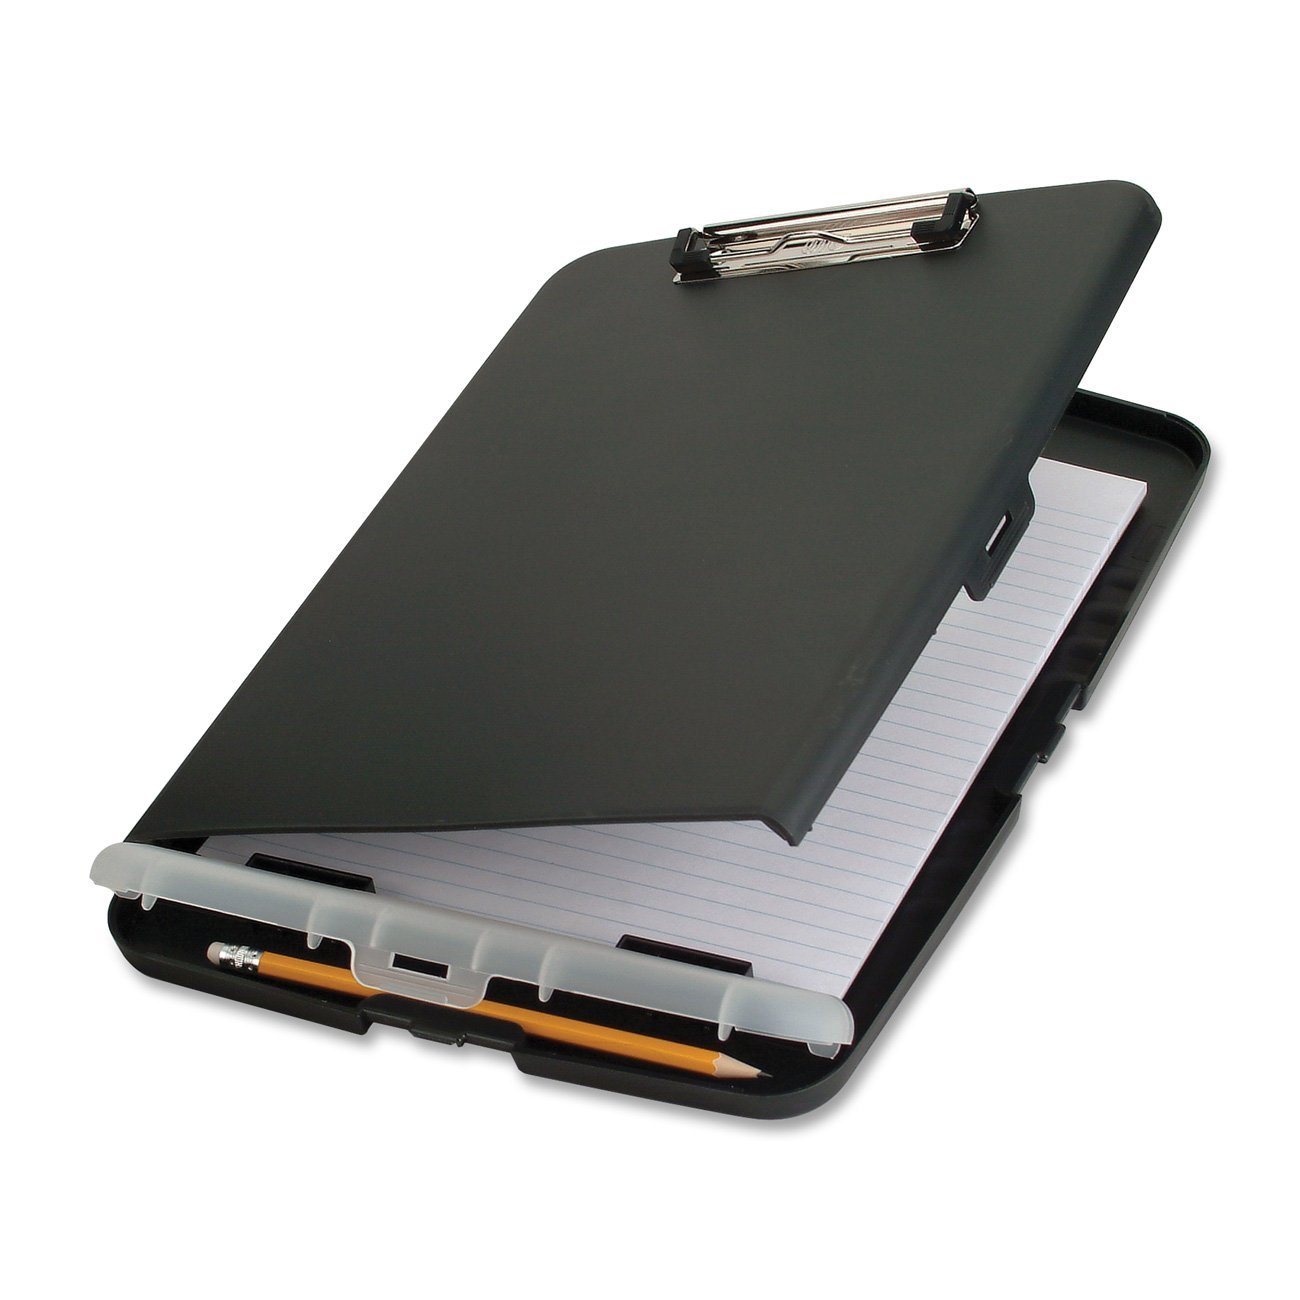 Slim Clipboard Storage Box, Charcoal (83303), All Each Awareness Size Black 83309 2Pack Capacity 83357 83353 11 12 Gray 00559 Carry OIC Box.., By Officemate